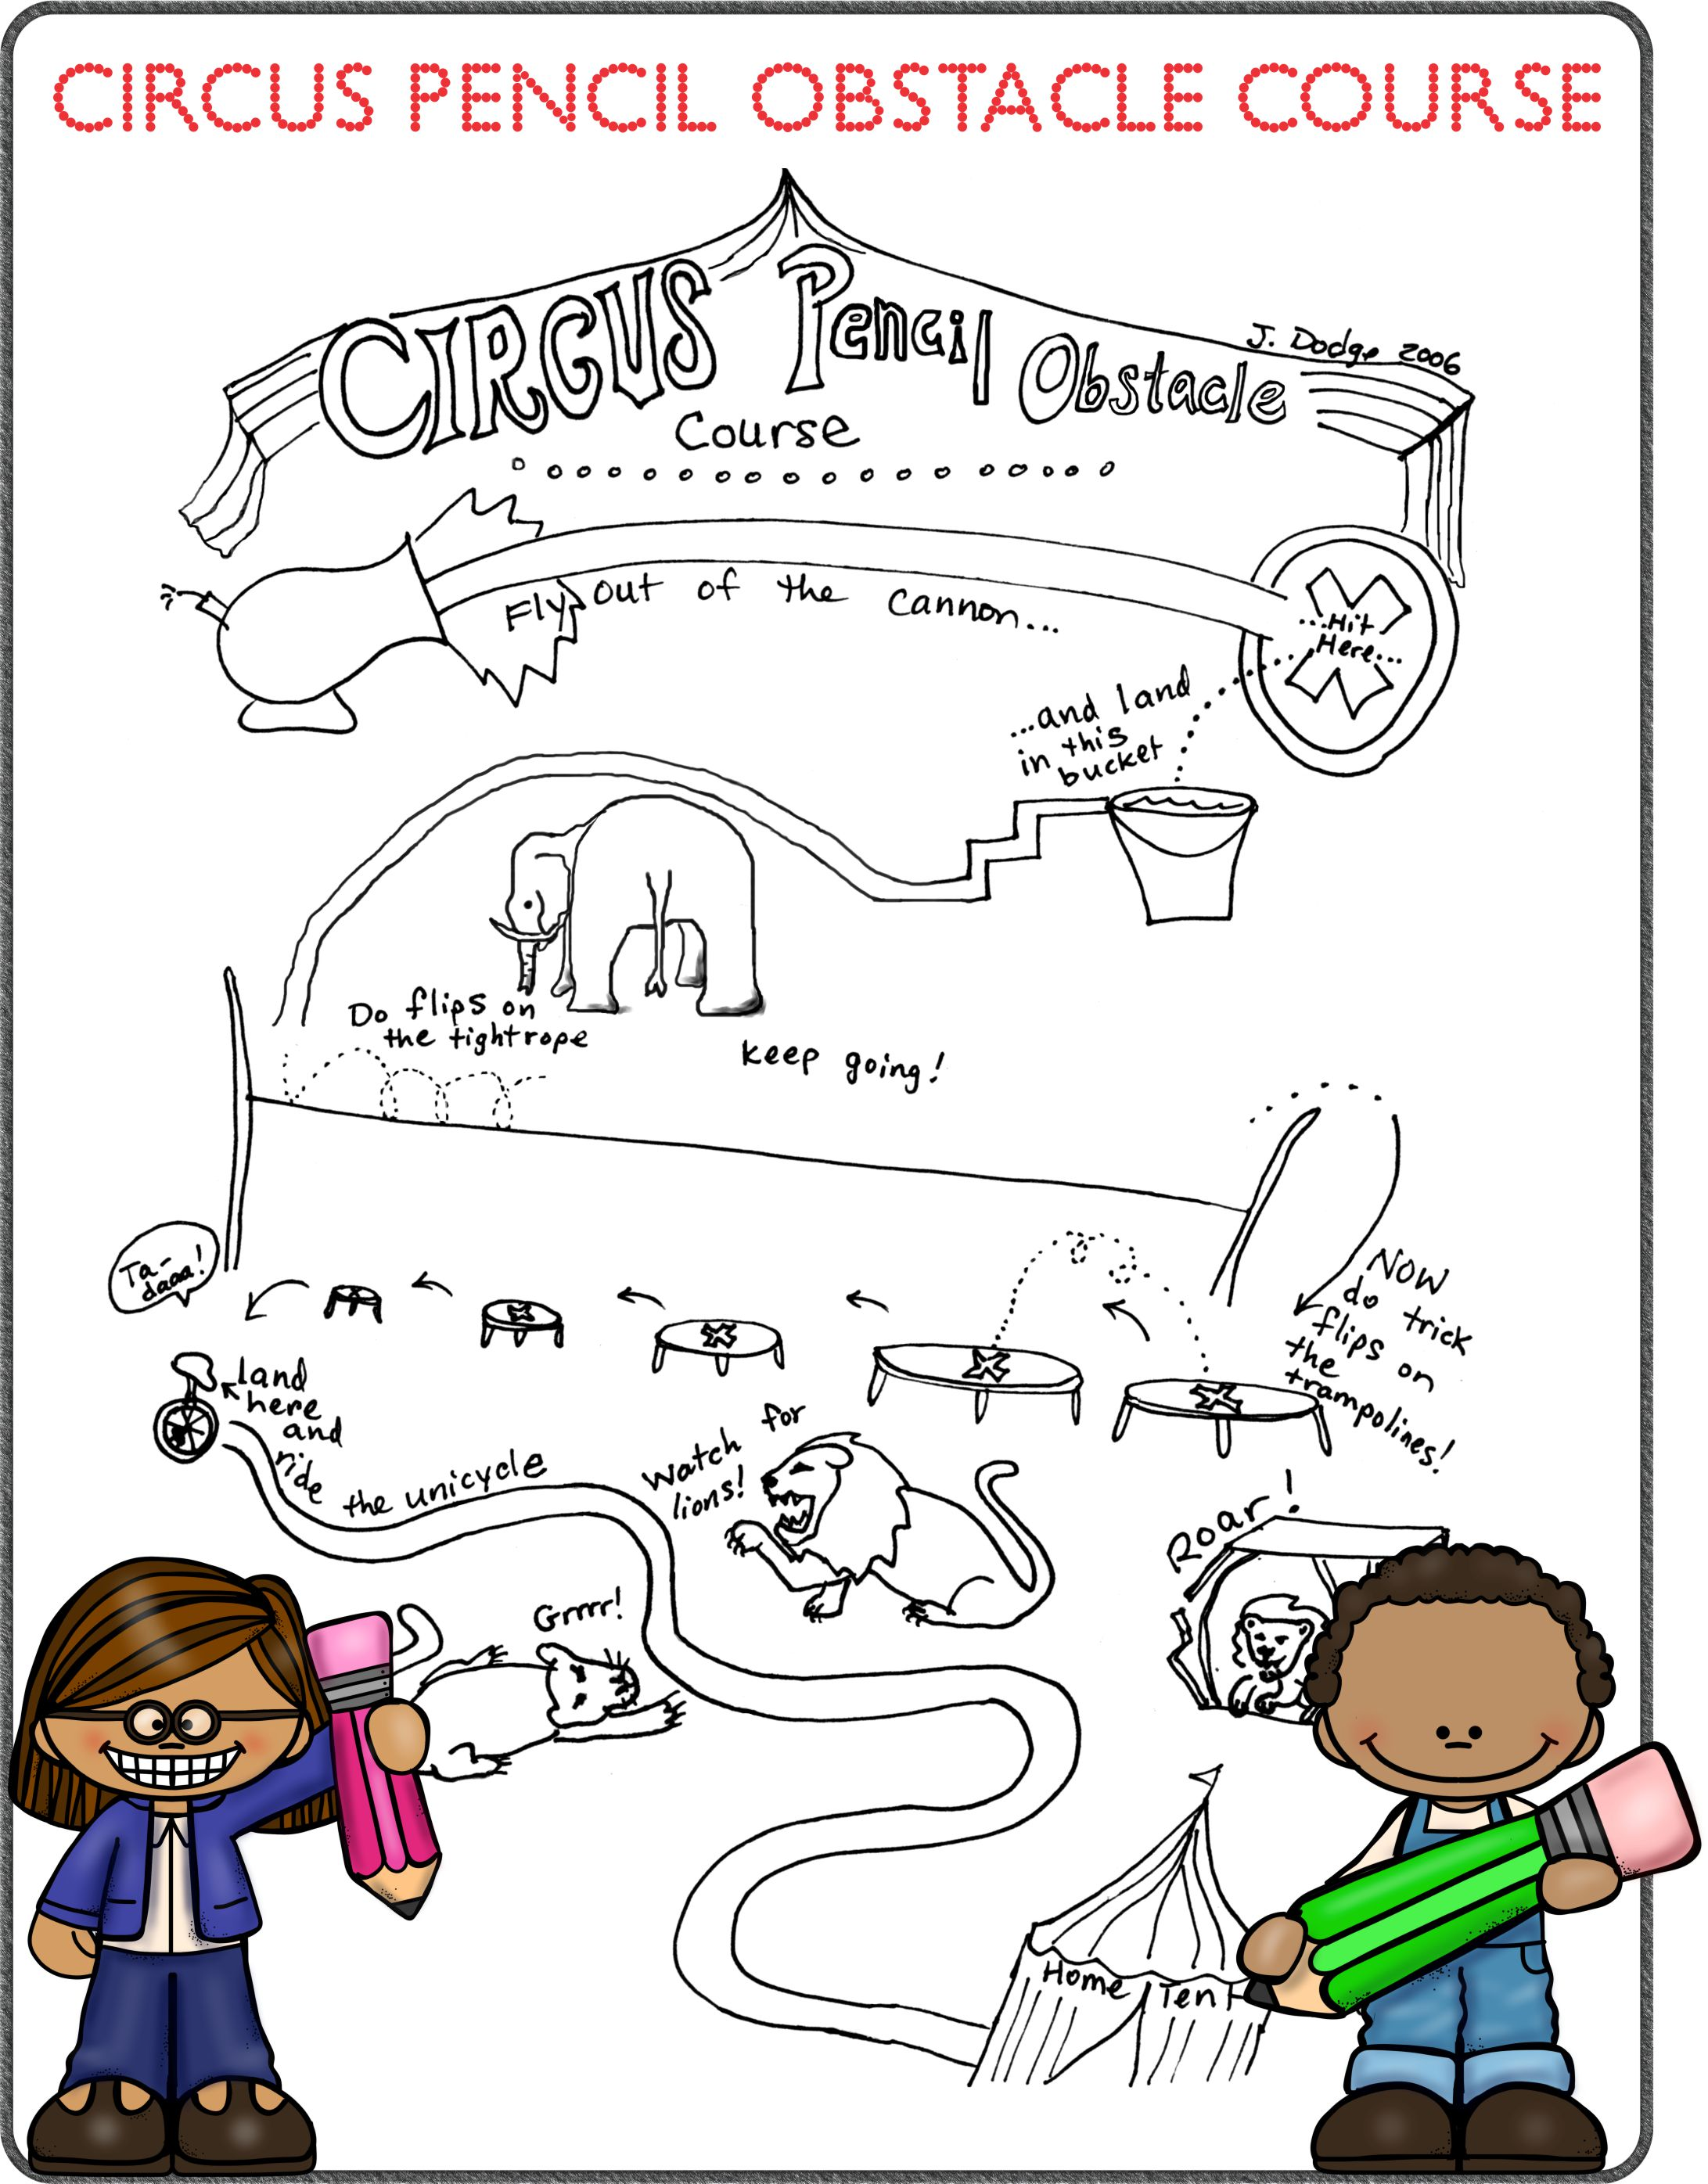 Circus Pencil Obstacle Course